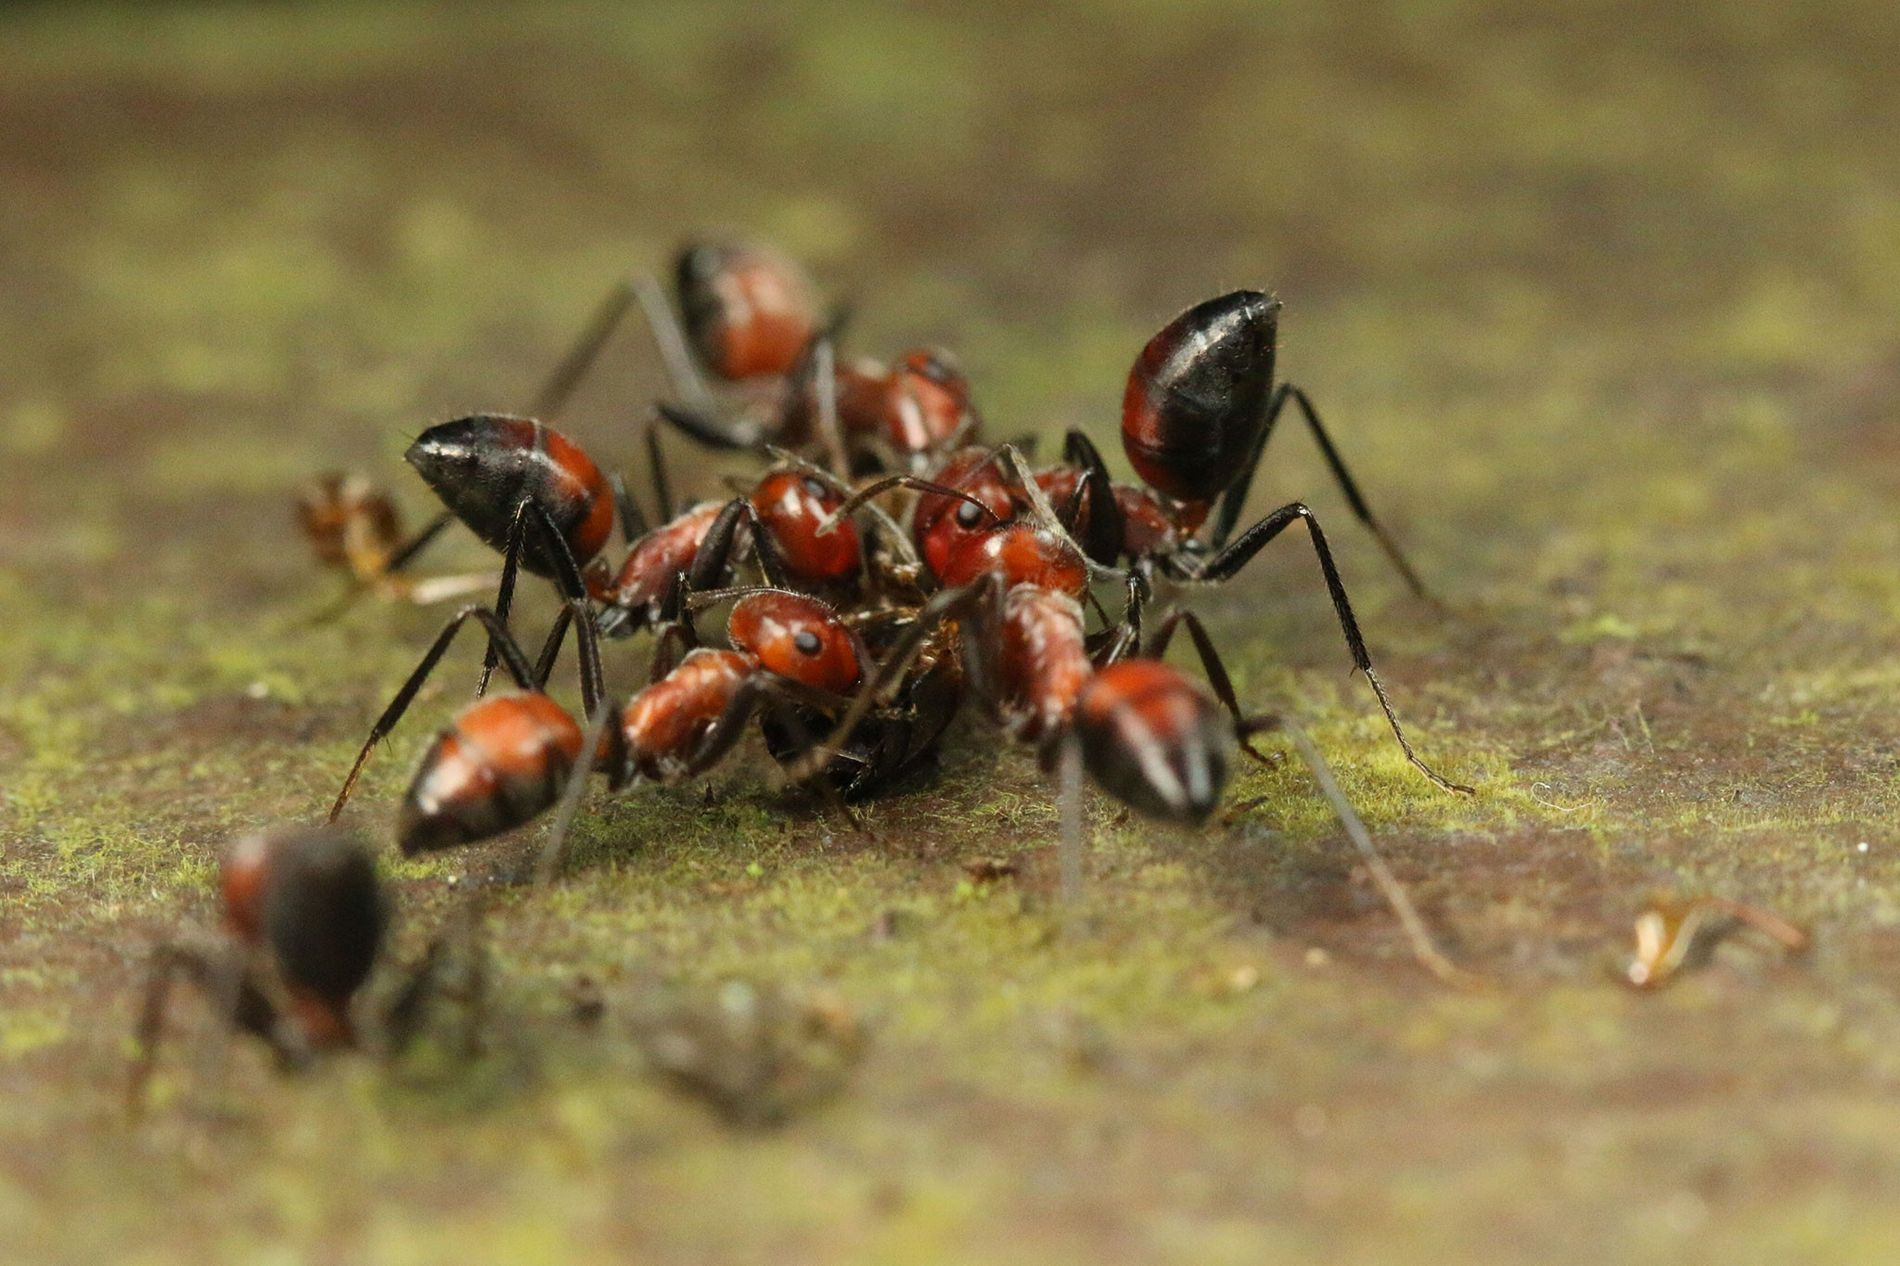 The ant lacks large mandibles, cannot sting, and generally seems like easy pickings for any predator—until ...